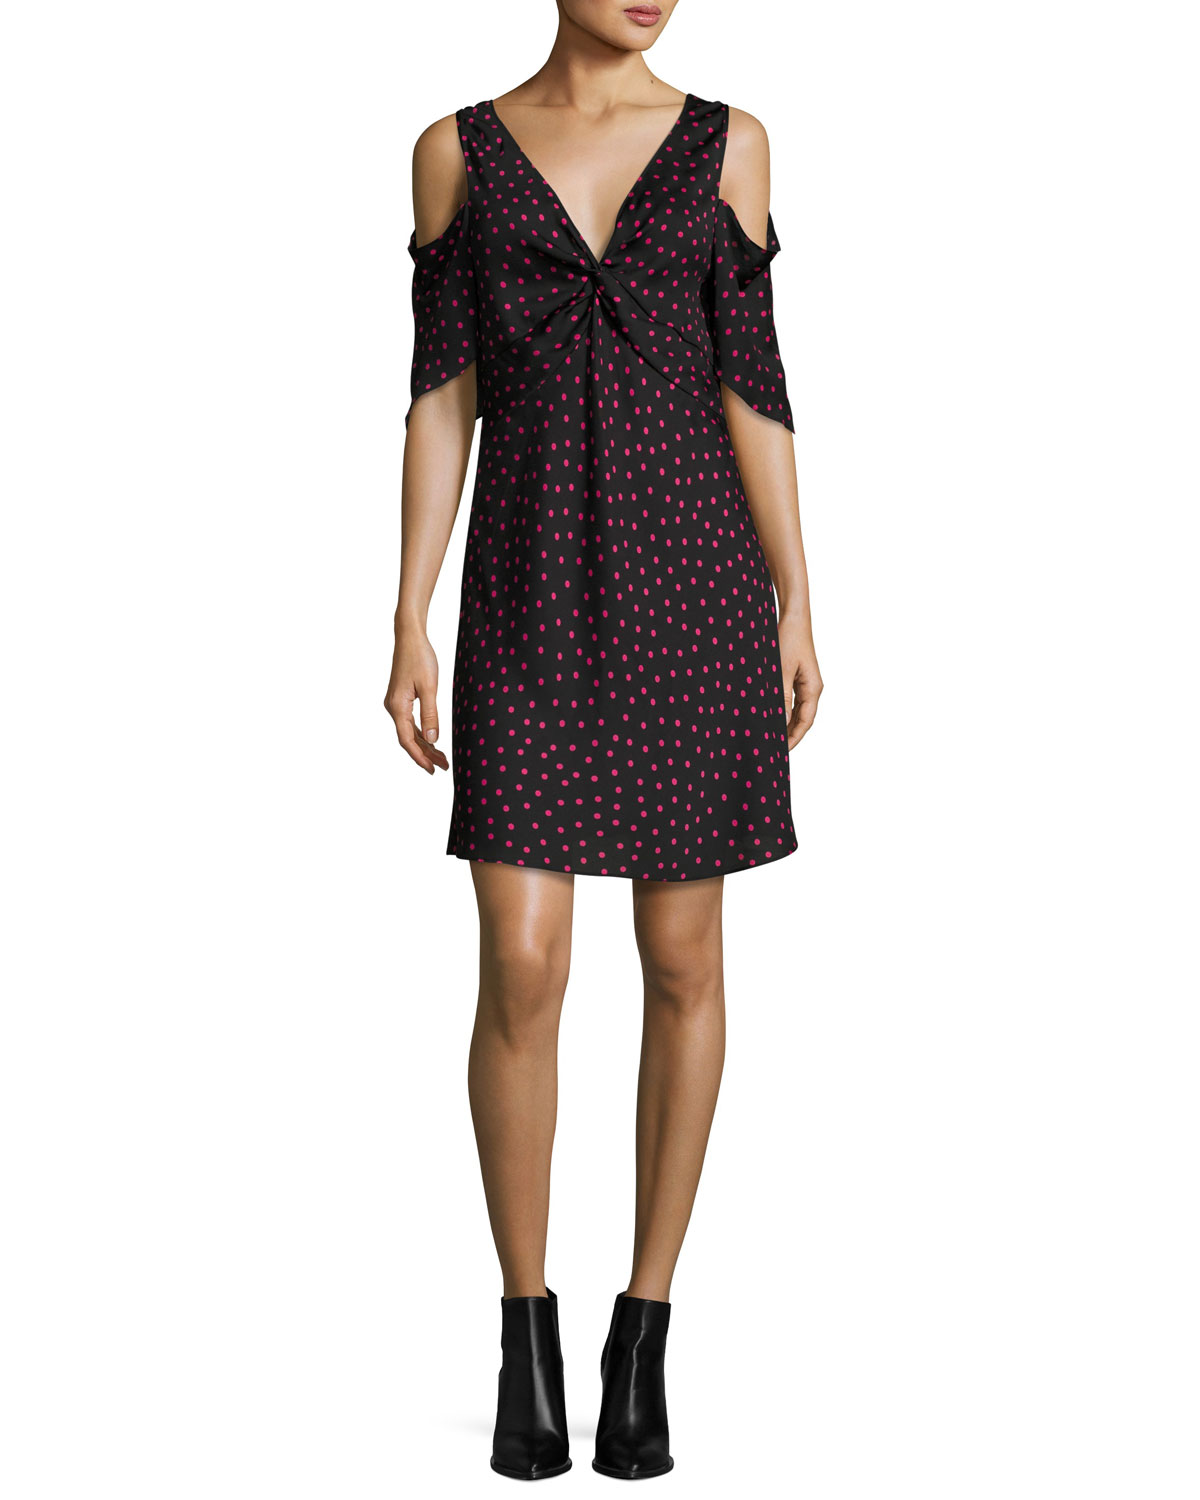 Mcq Alexander Mcqueen Woman Ruffled Polka-dot Georgette Midi Dress Black Size 38 Alexander McQueen